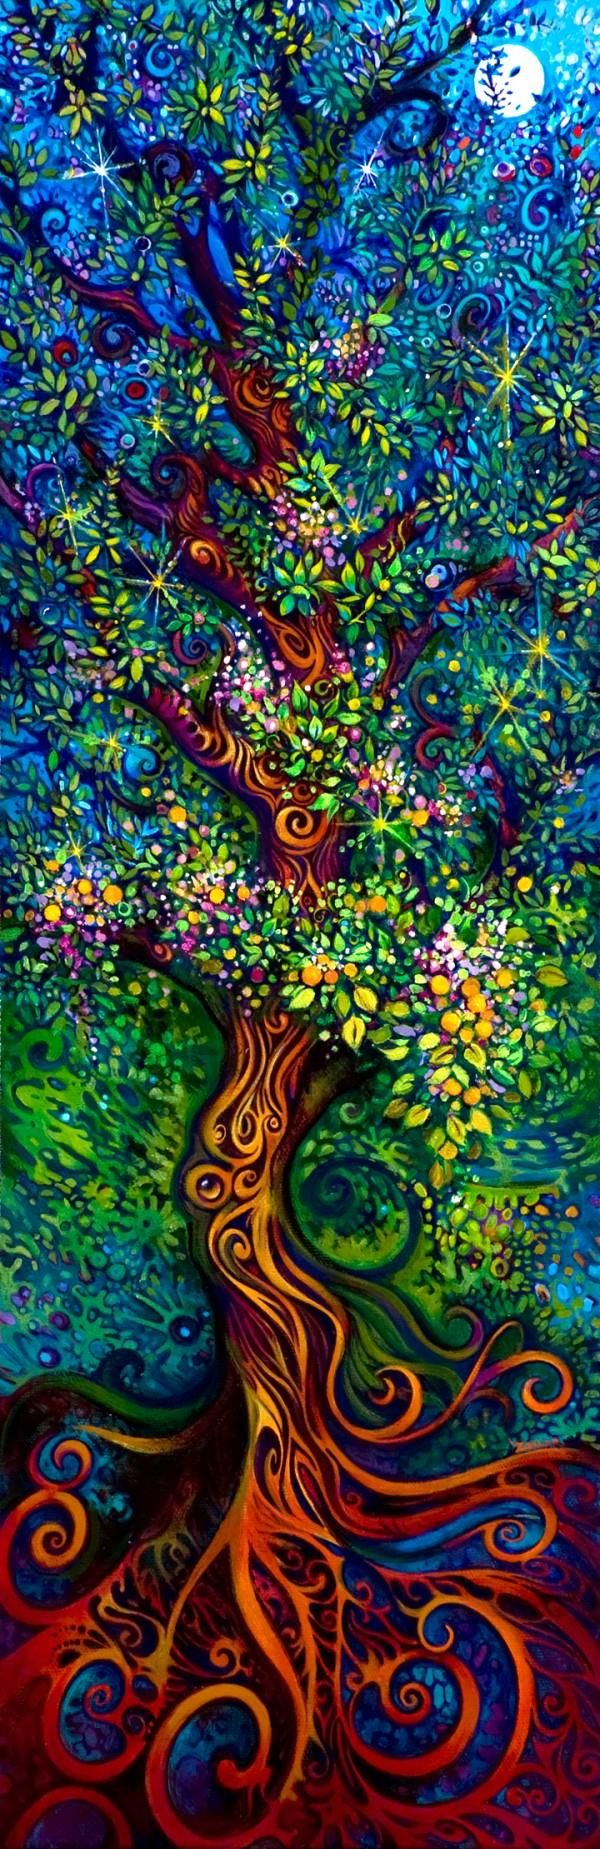 The Tree of Life by artist Laura Zollar